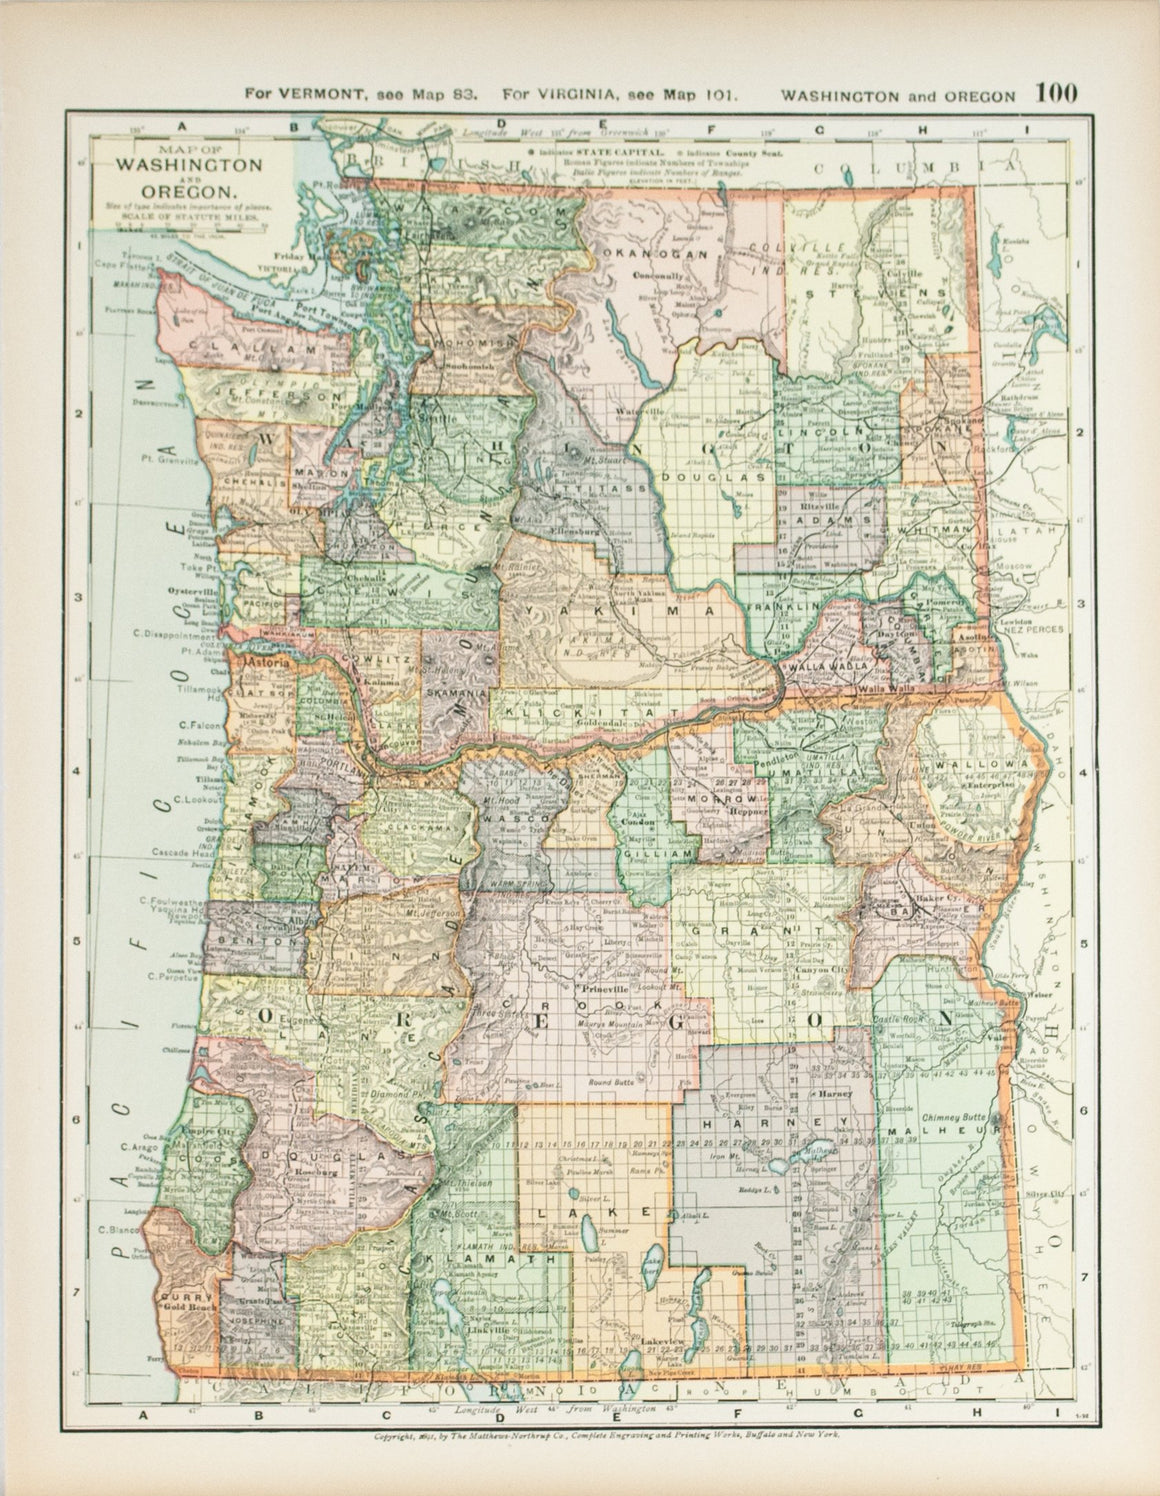 1891 Map of Washington and Oregon